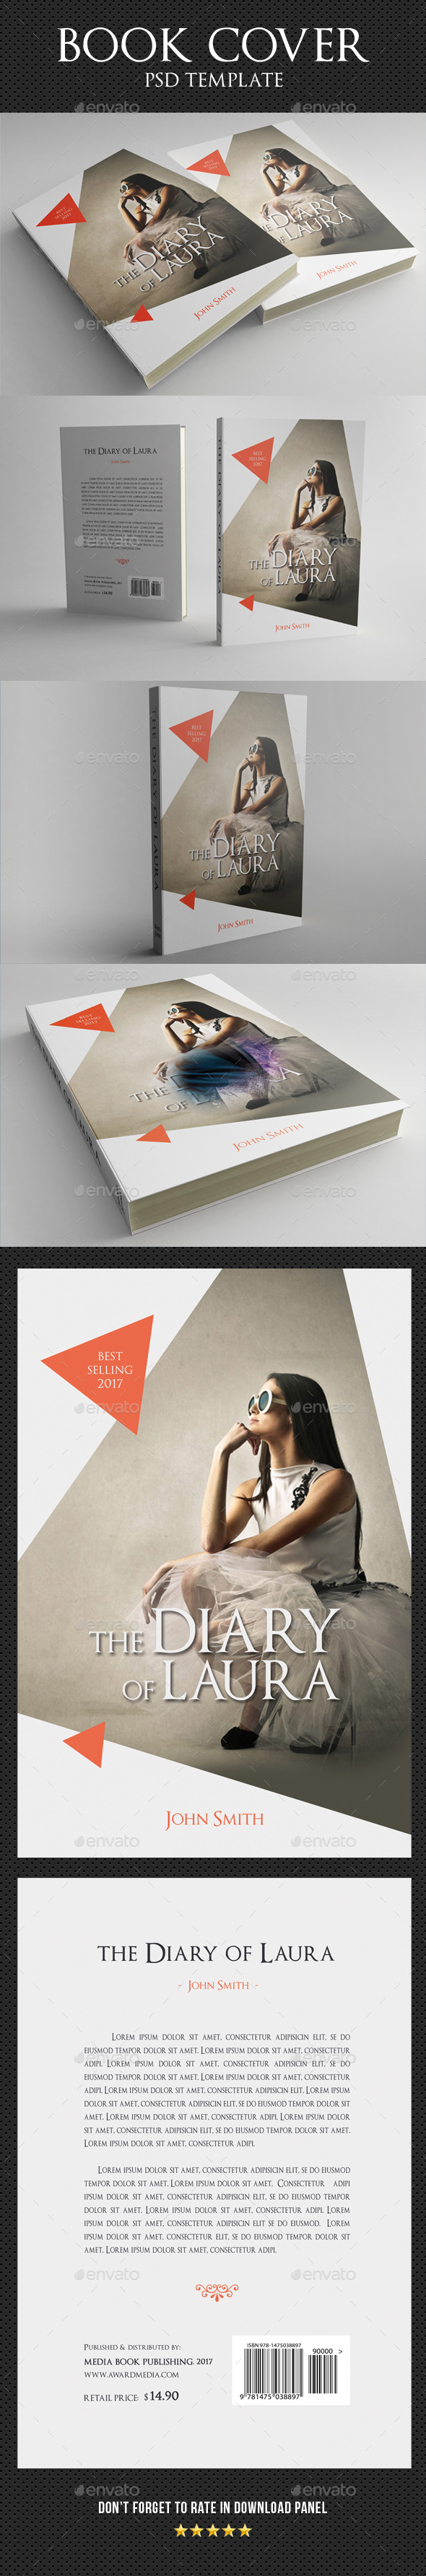 Book Cover Template 36 - Miscellaneous Print Templates